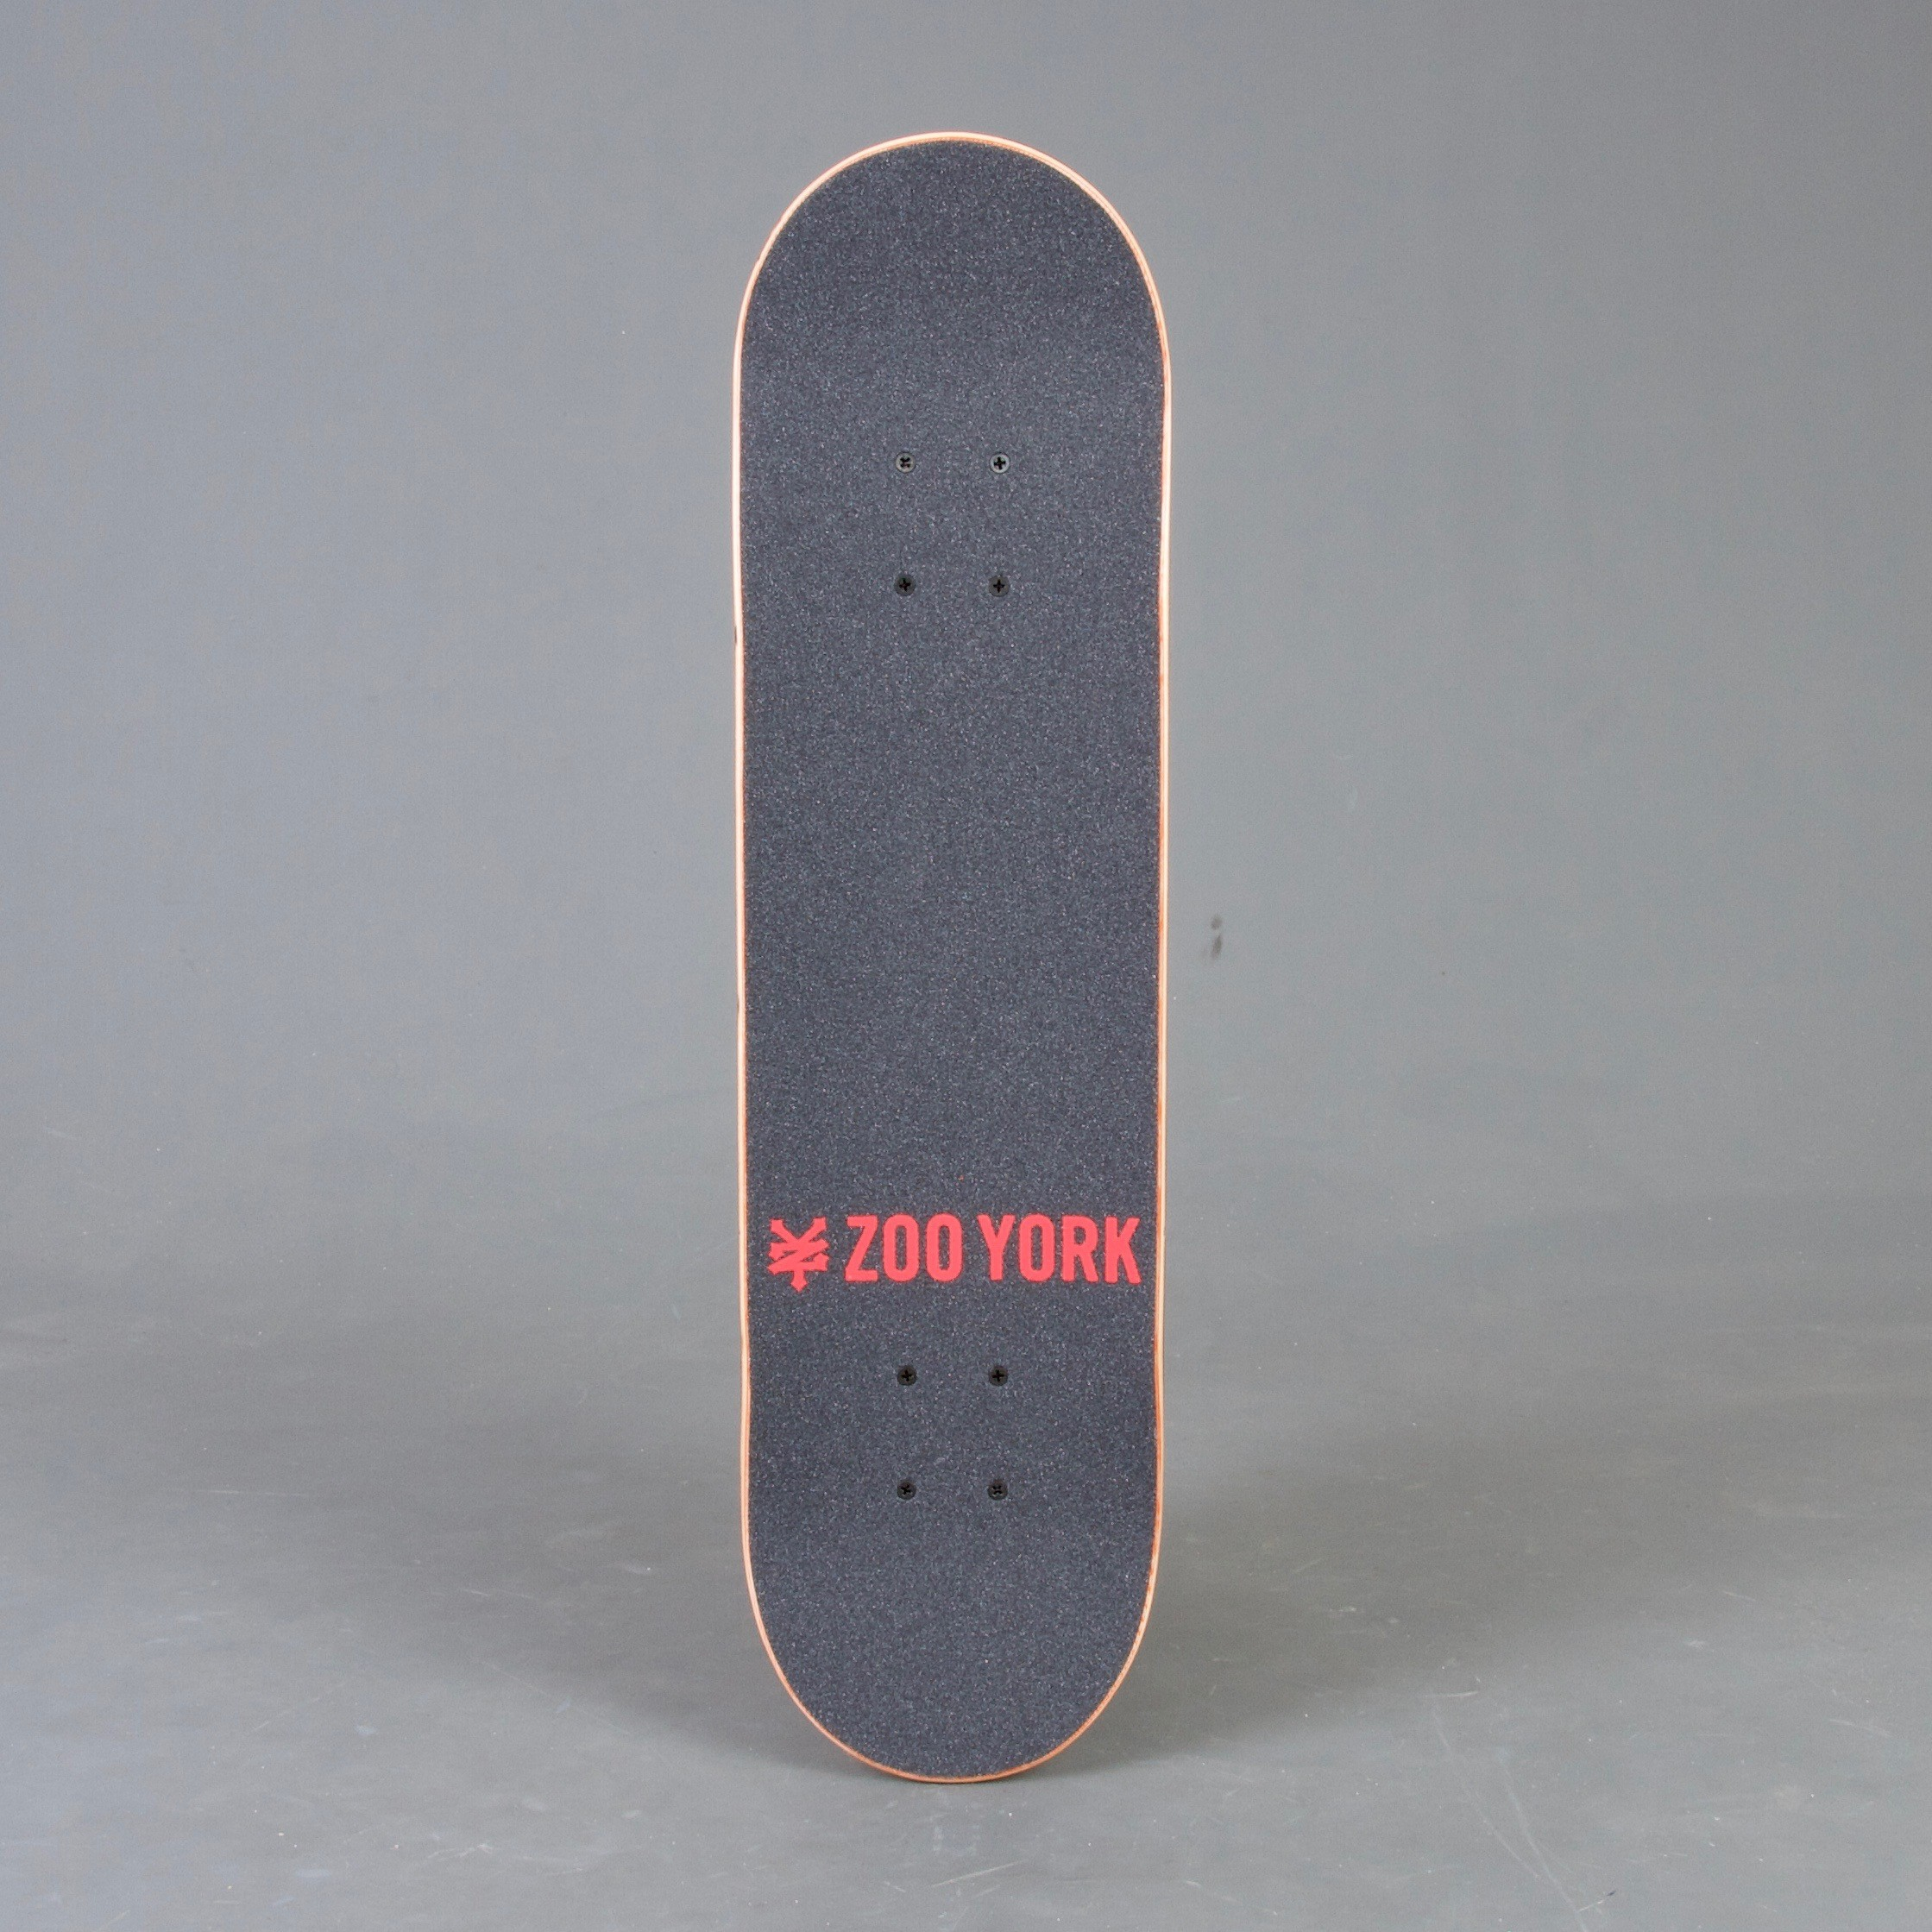 Zoo York Fire 7.5 komplett skateboard